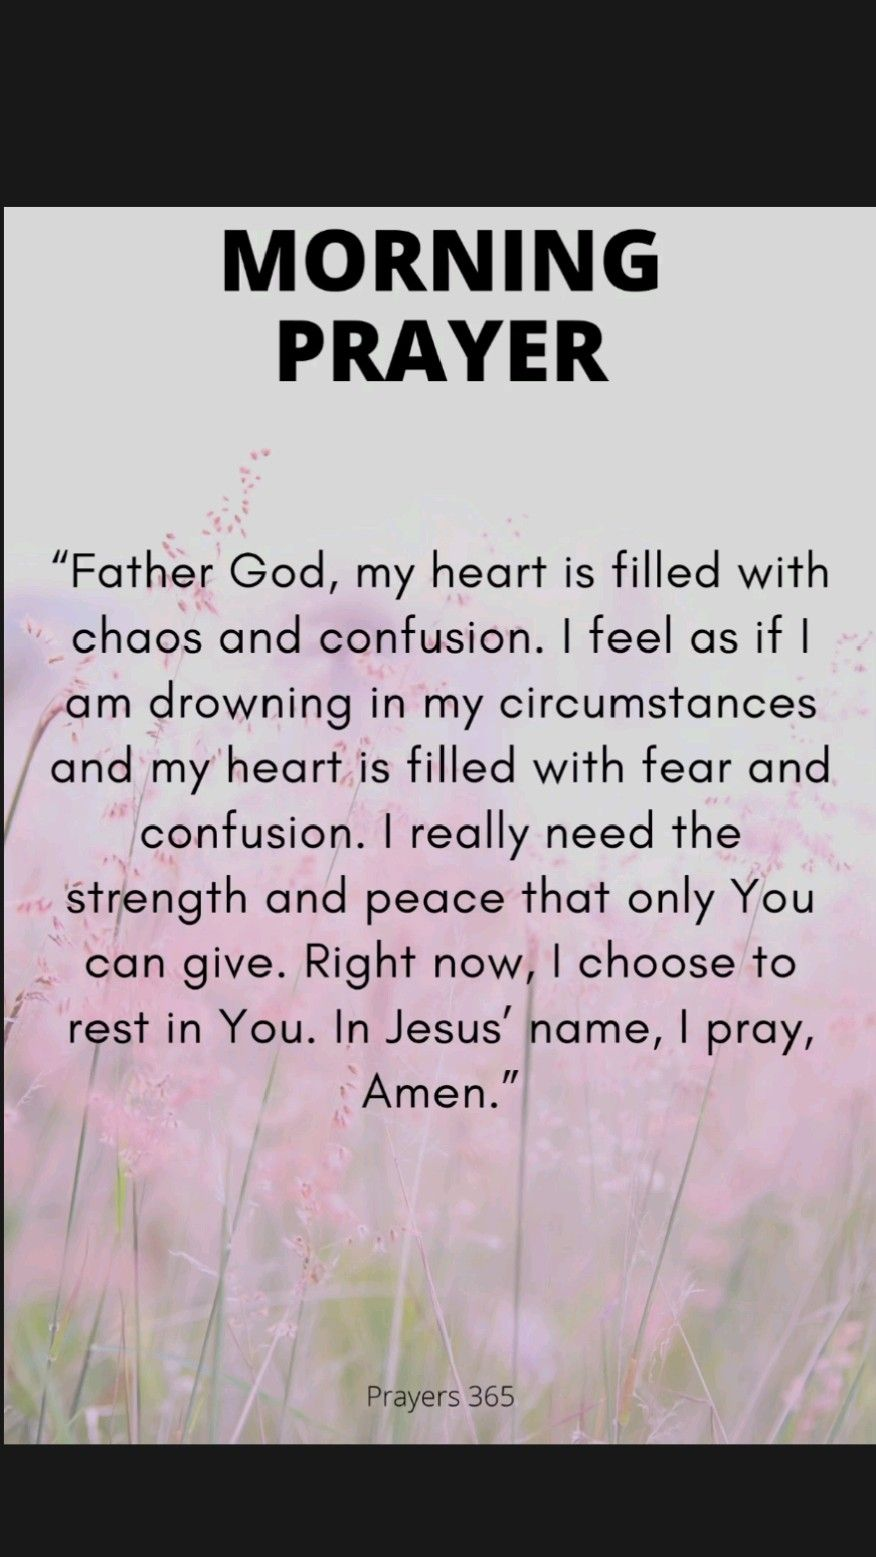 Morning prayers, prayer for strength, prayer quotes